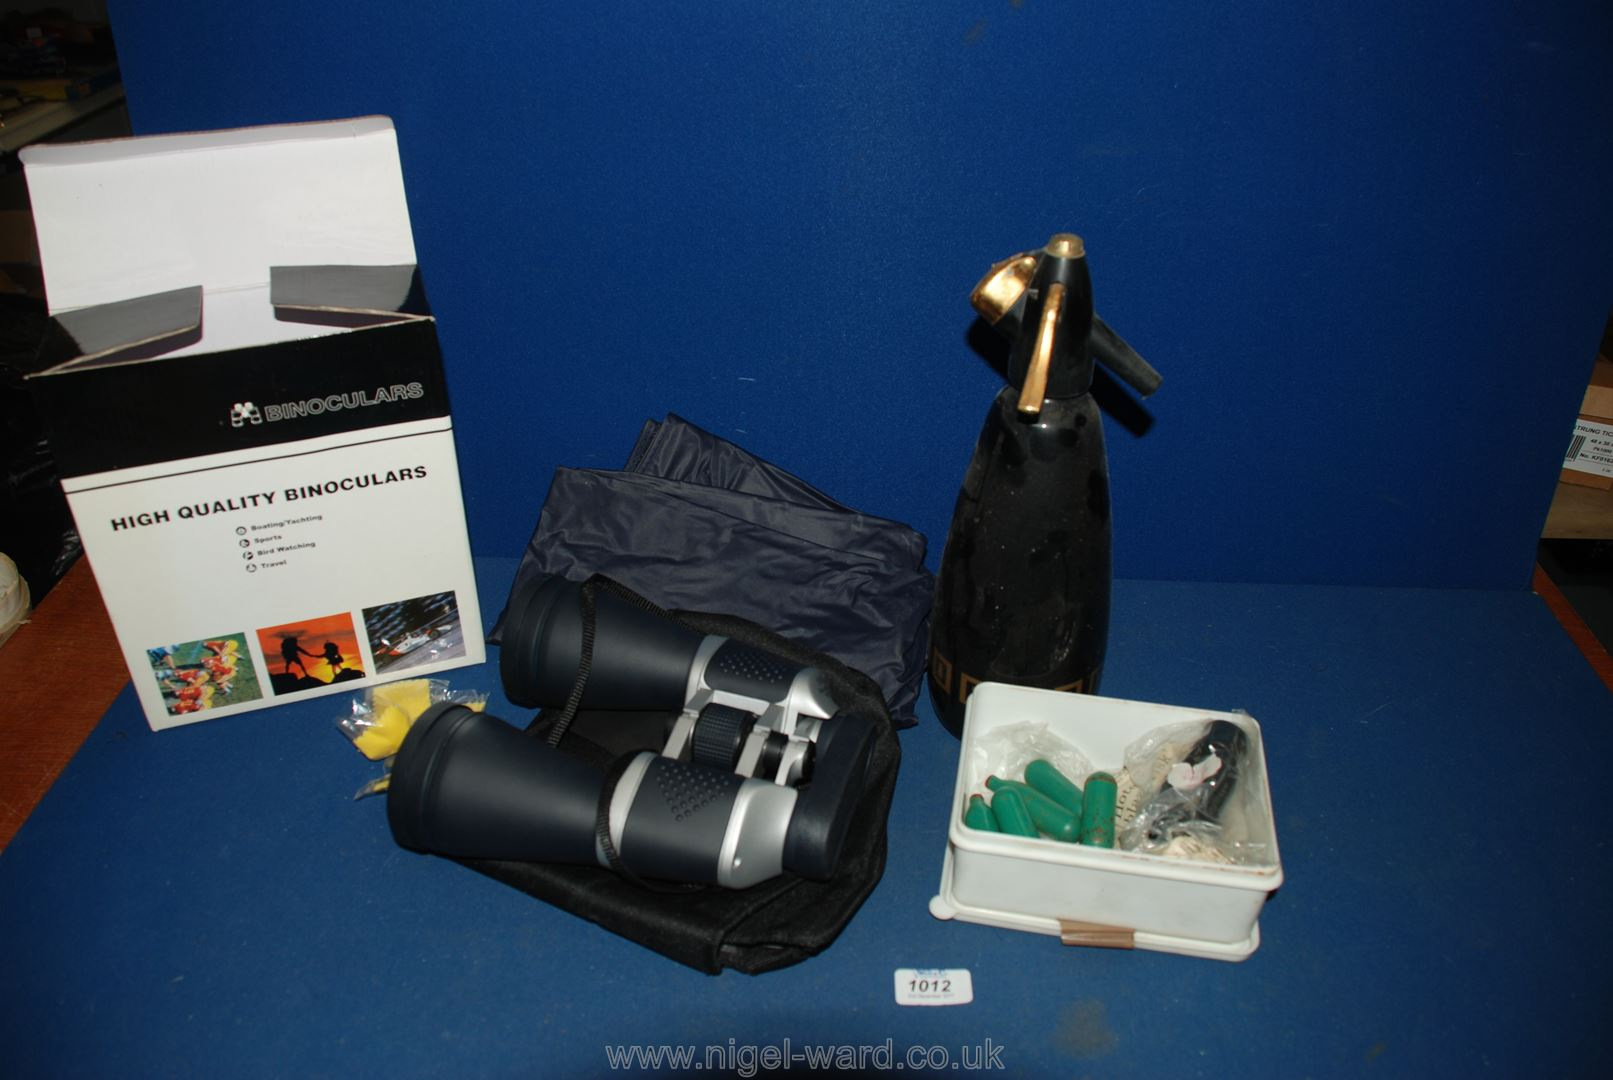 Lot 1012 - A pair of 10 x 60 Binoculars, still boxed with soft carry case,